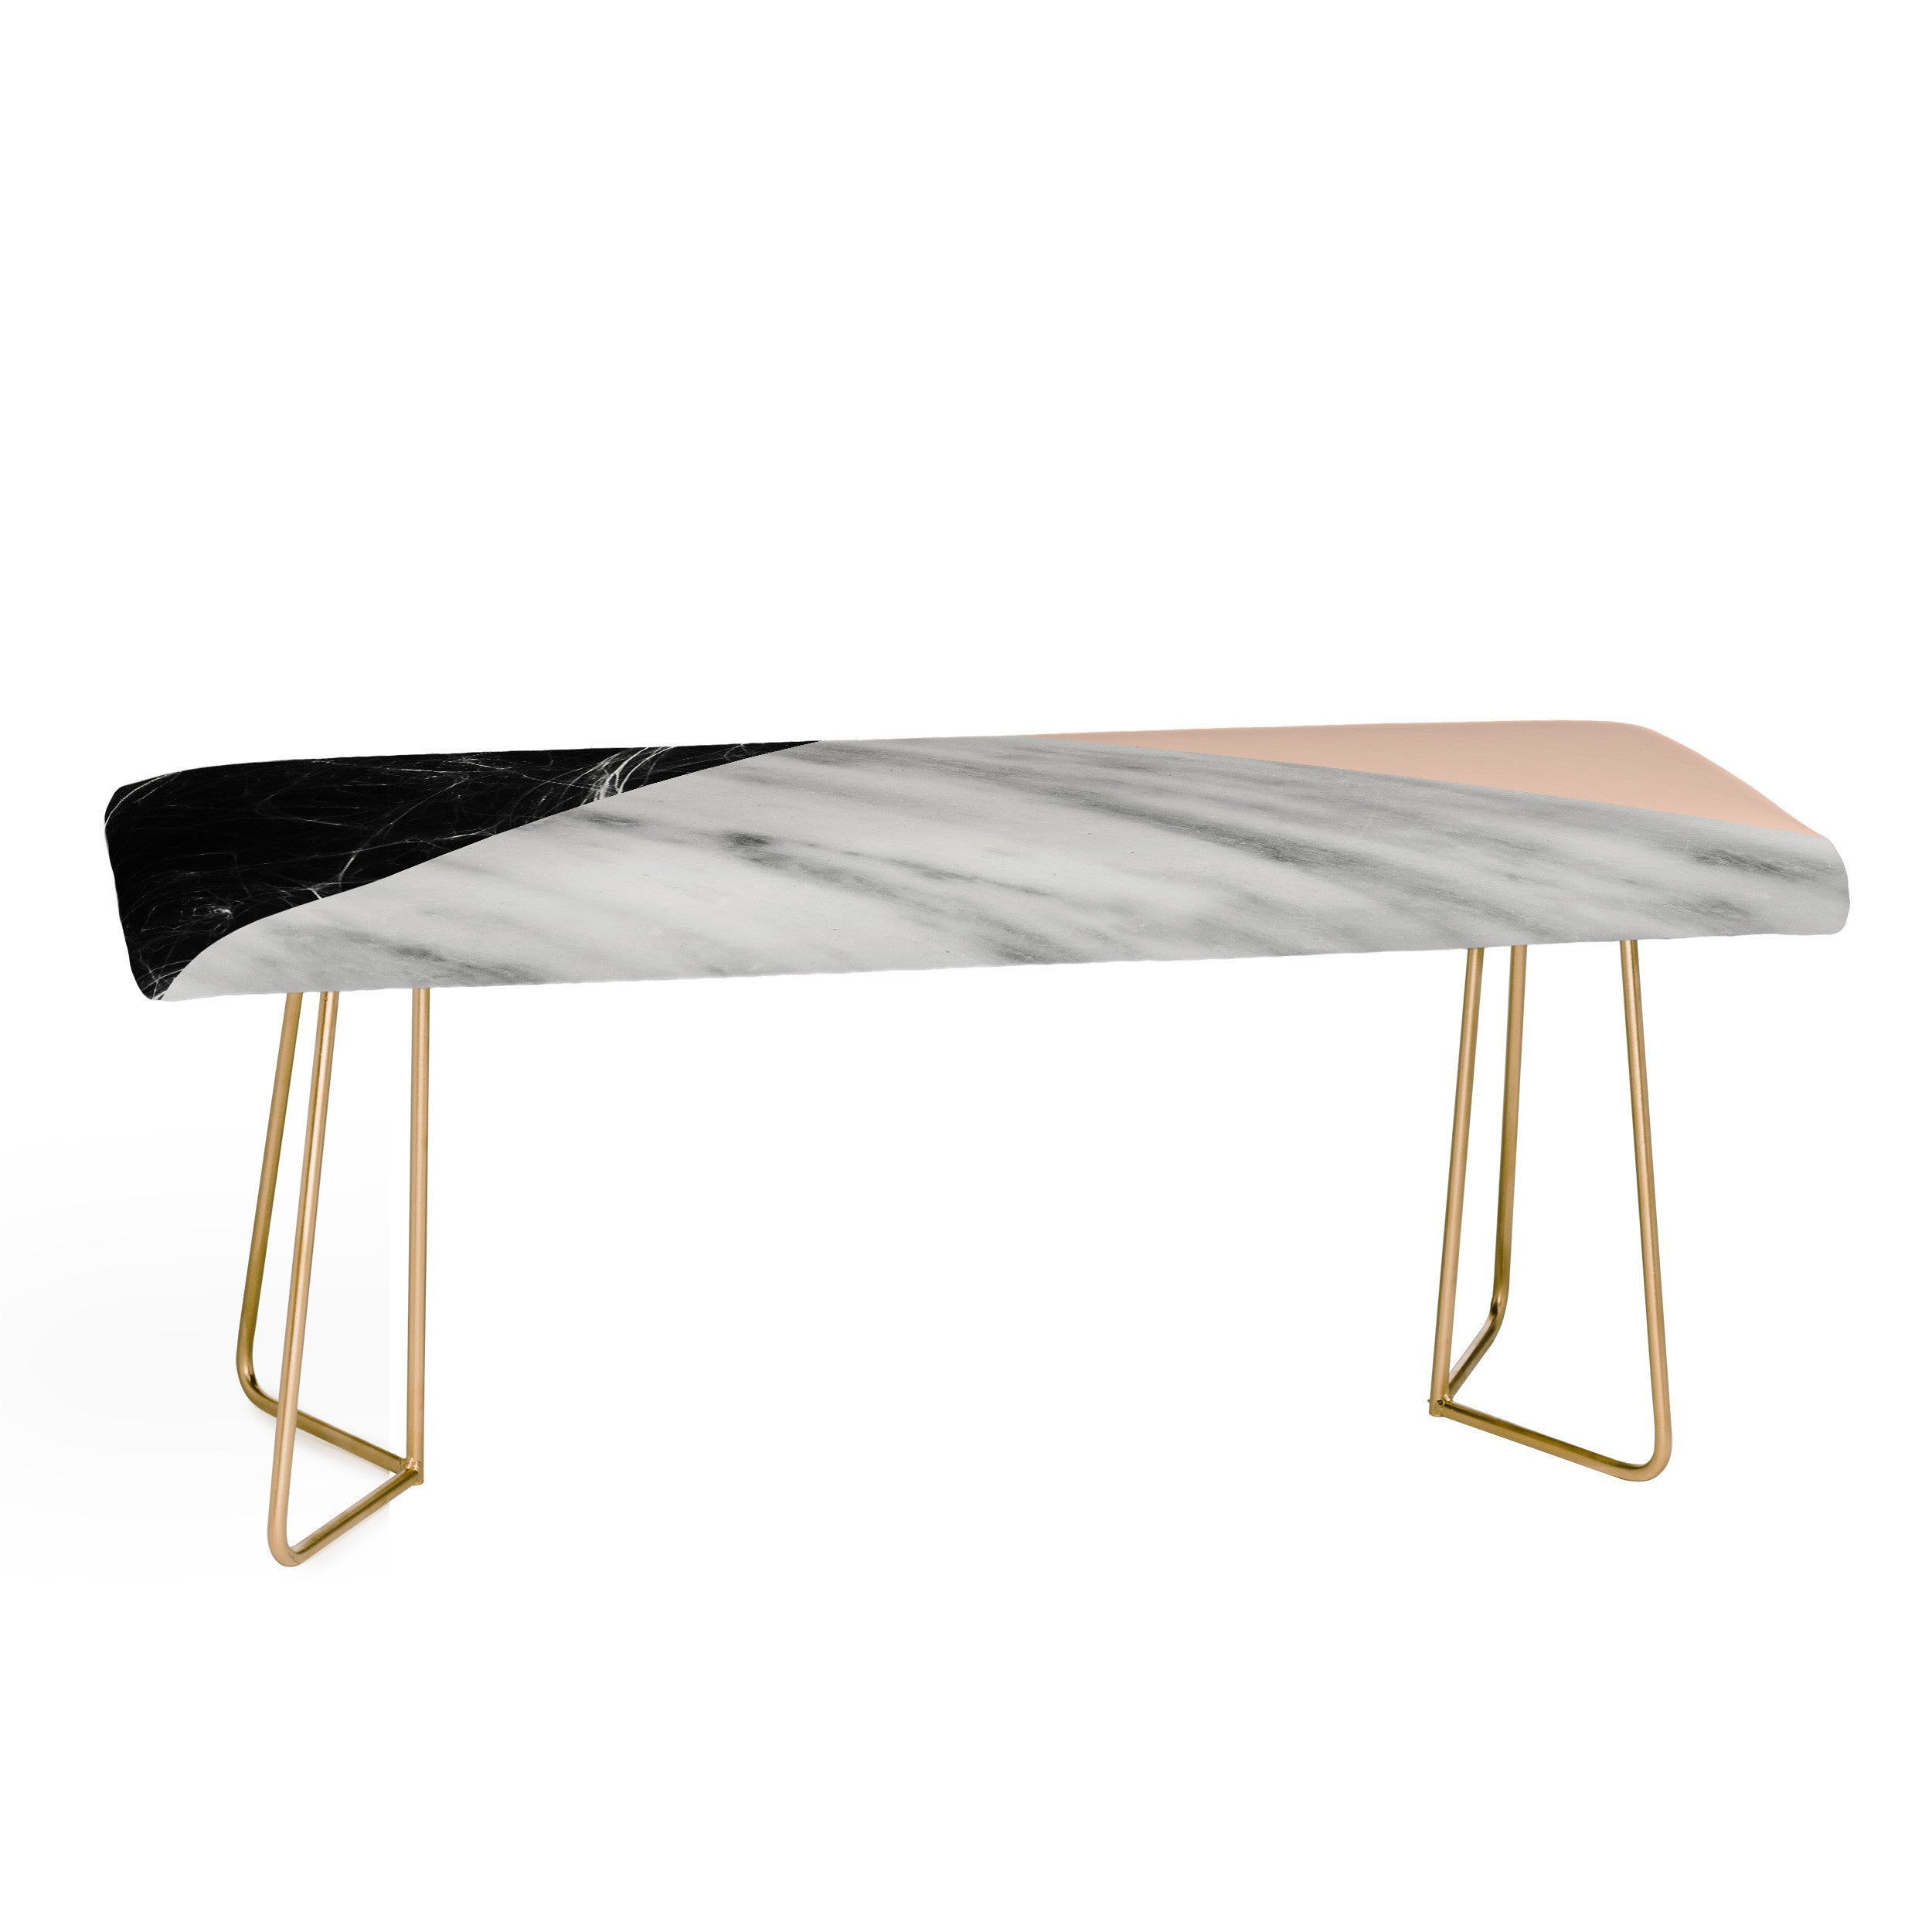 marble collage with pink bench by emanuela carratoni – aptb - marble collage with pink bench by emanuela carratoni